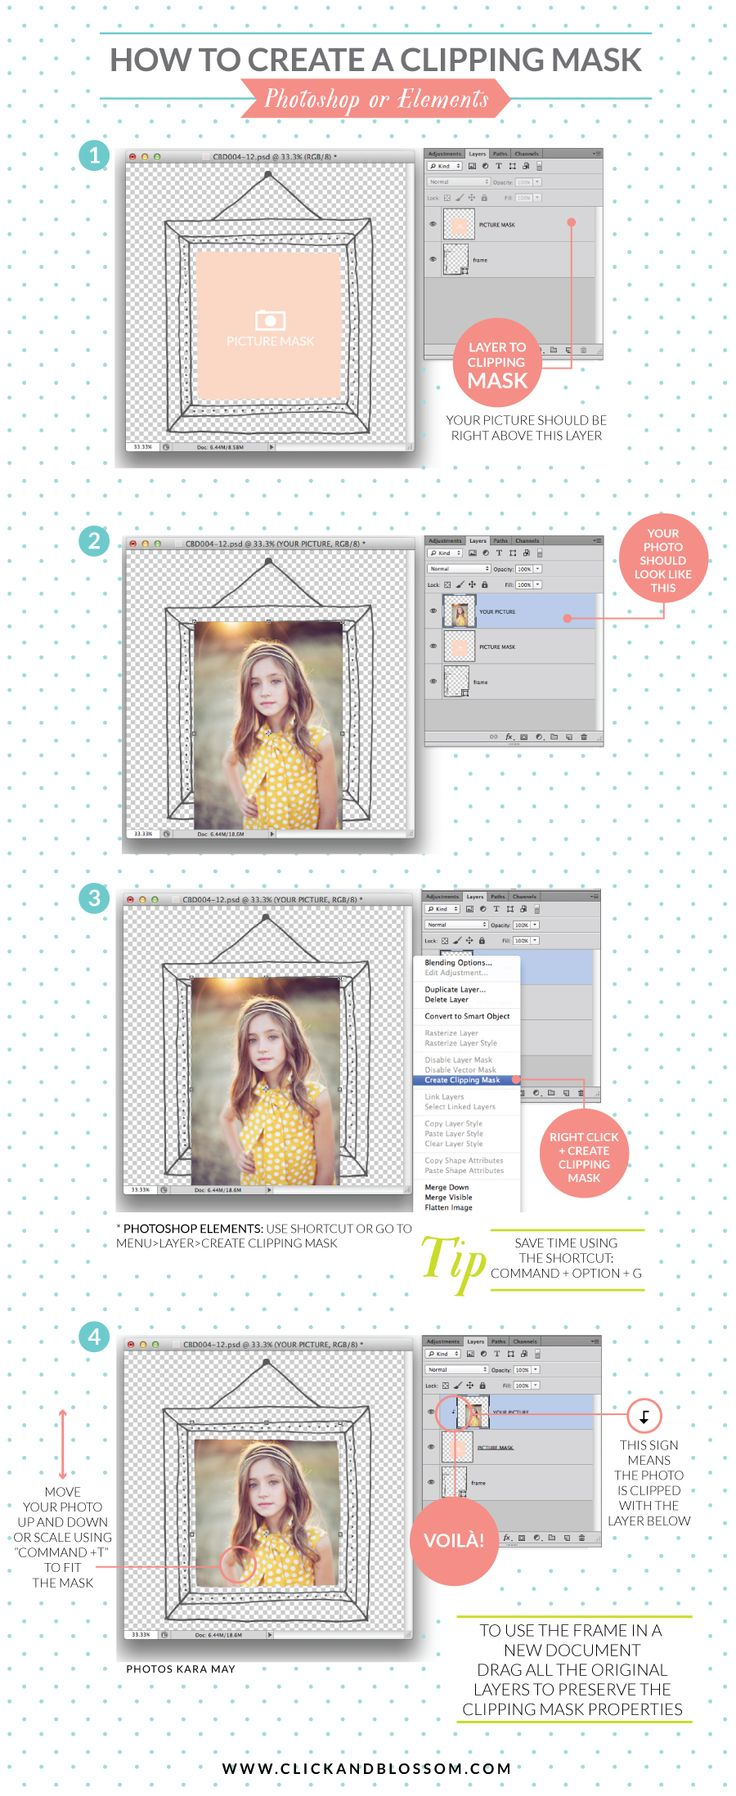 "How to create a clipping mask on photoshop or elements -- BEGINNING PHOTOSHOP OR ELEMENTS - learn ""clipping masks"" here! :)"